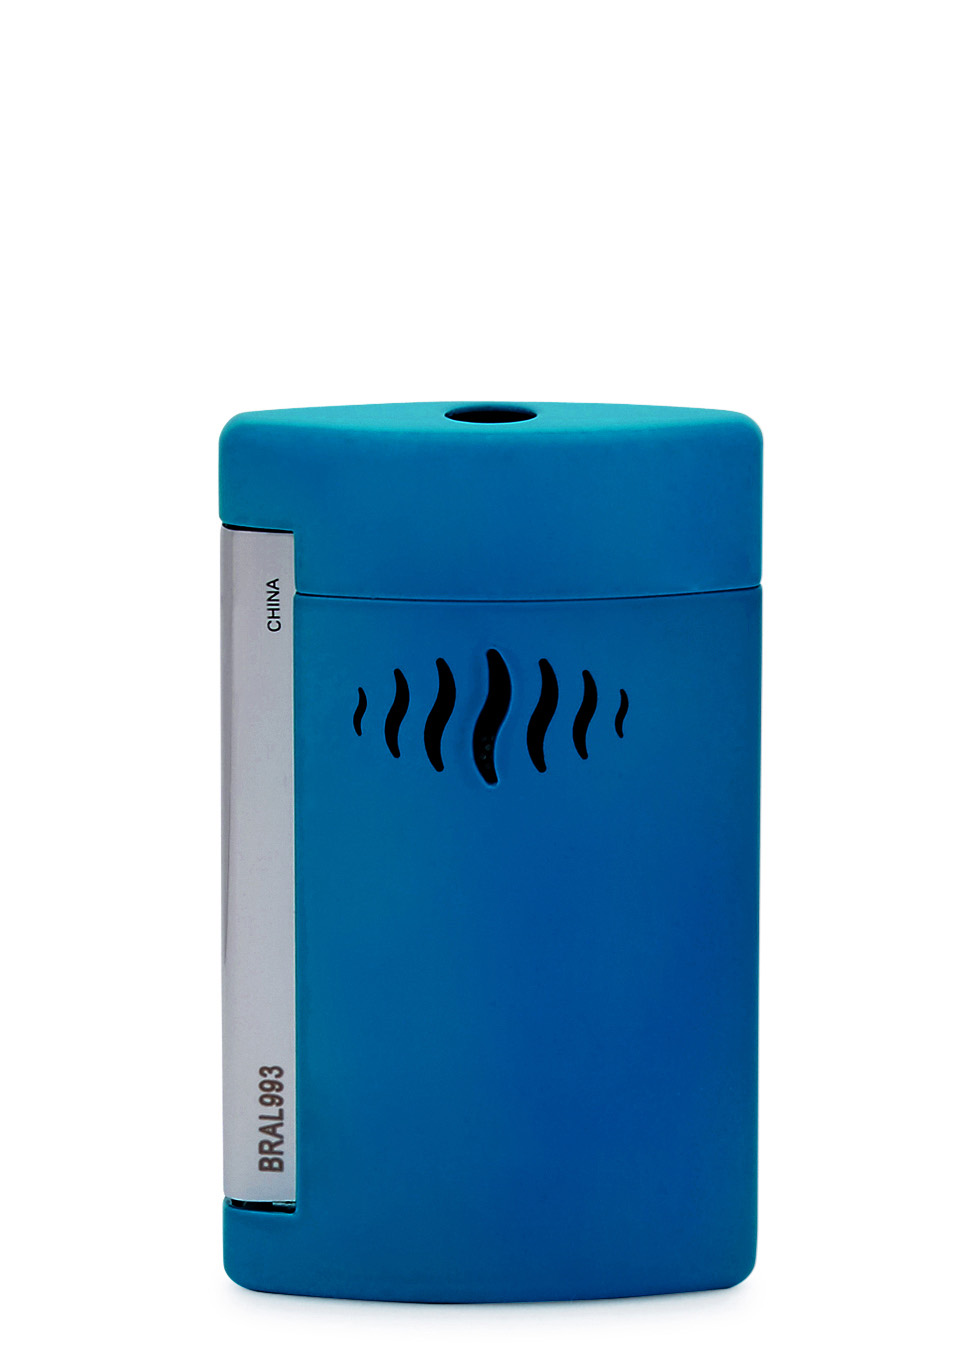 Minijet bright blue lacquered lighter - S.T. Dupont